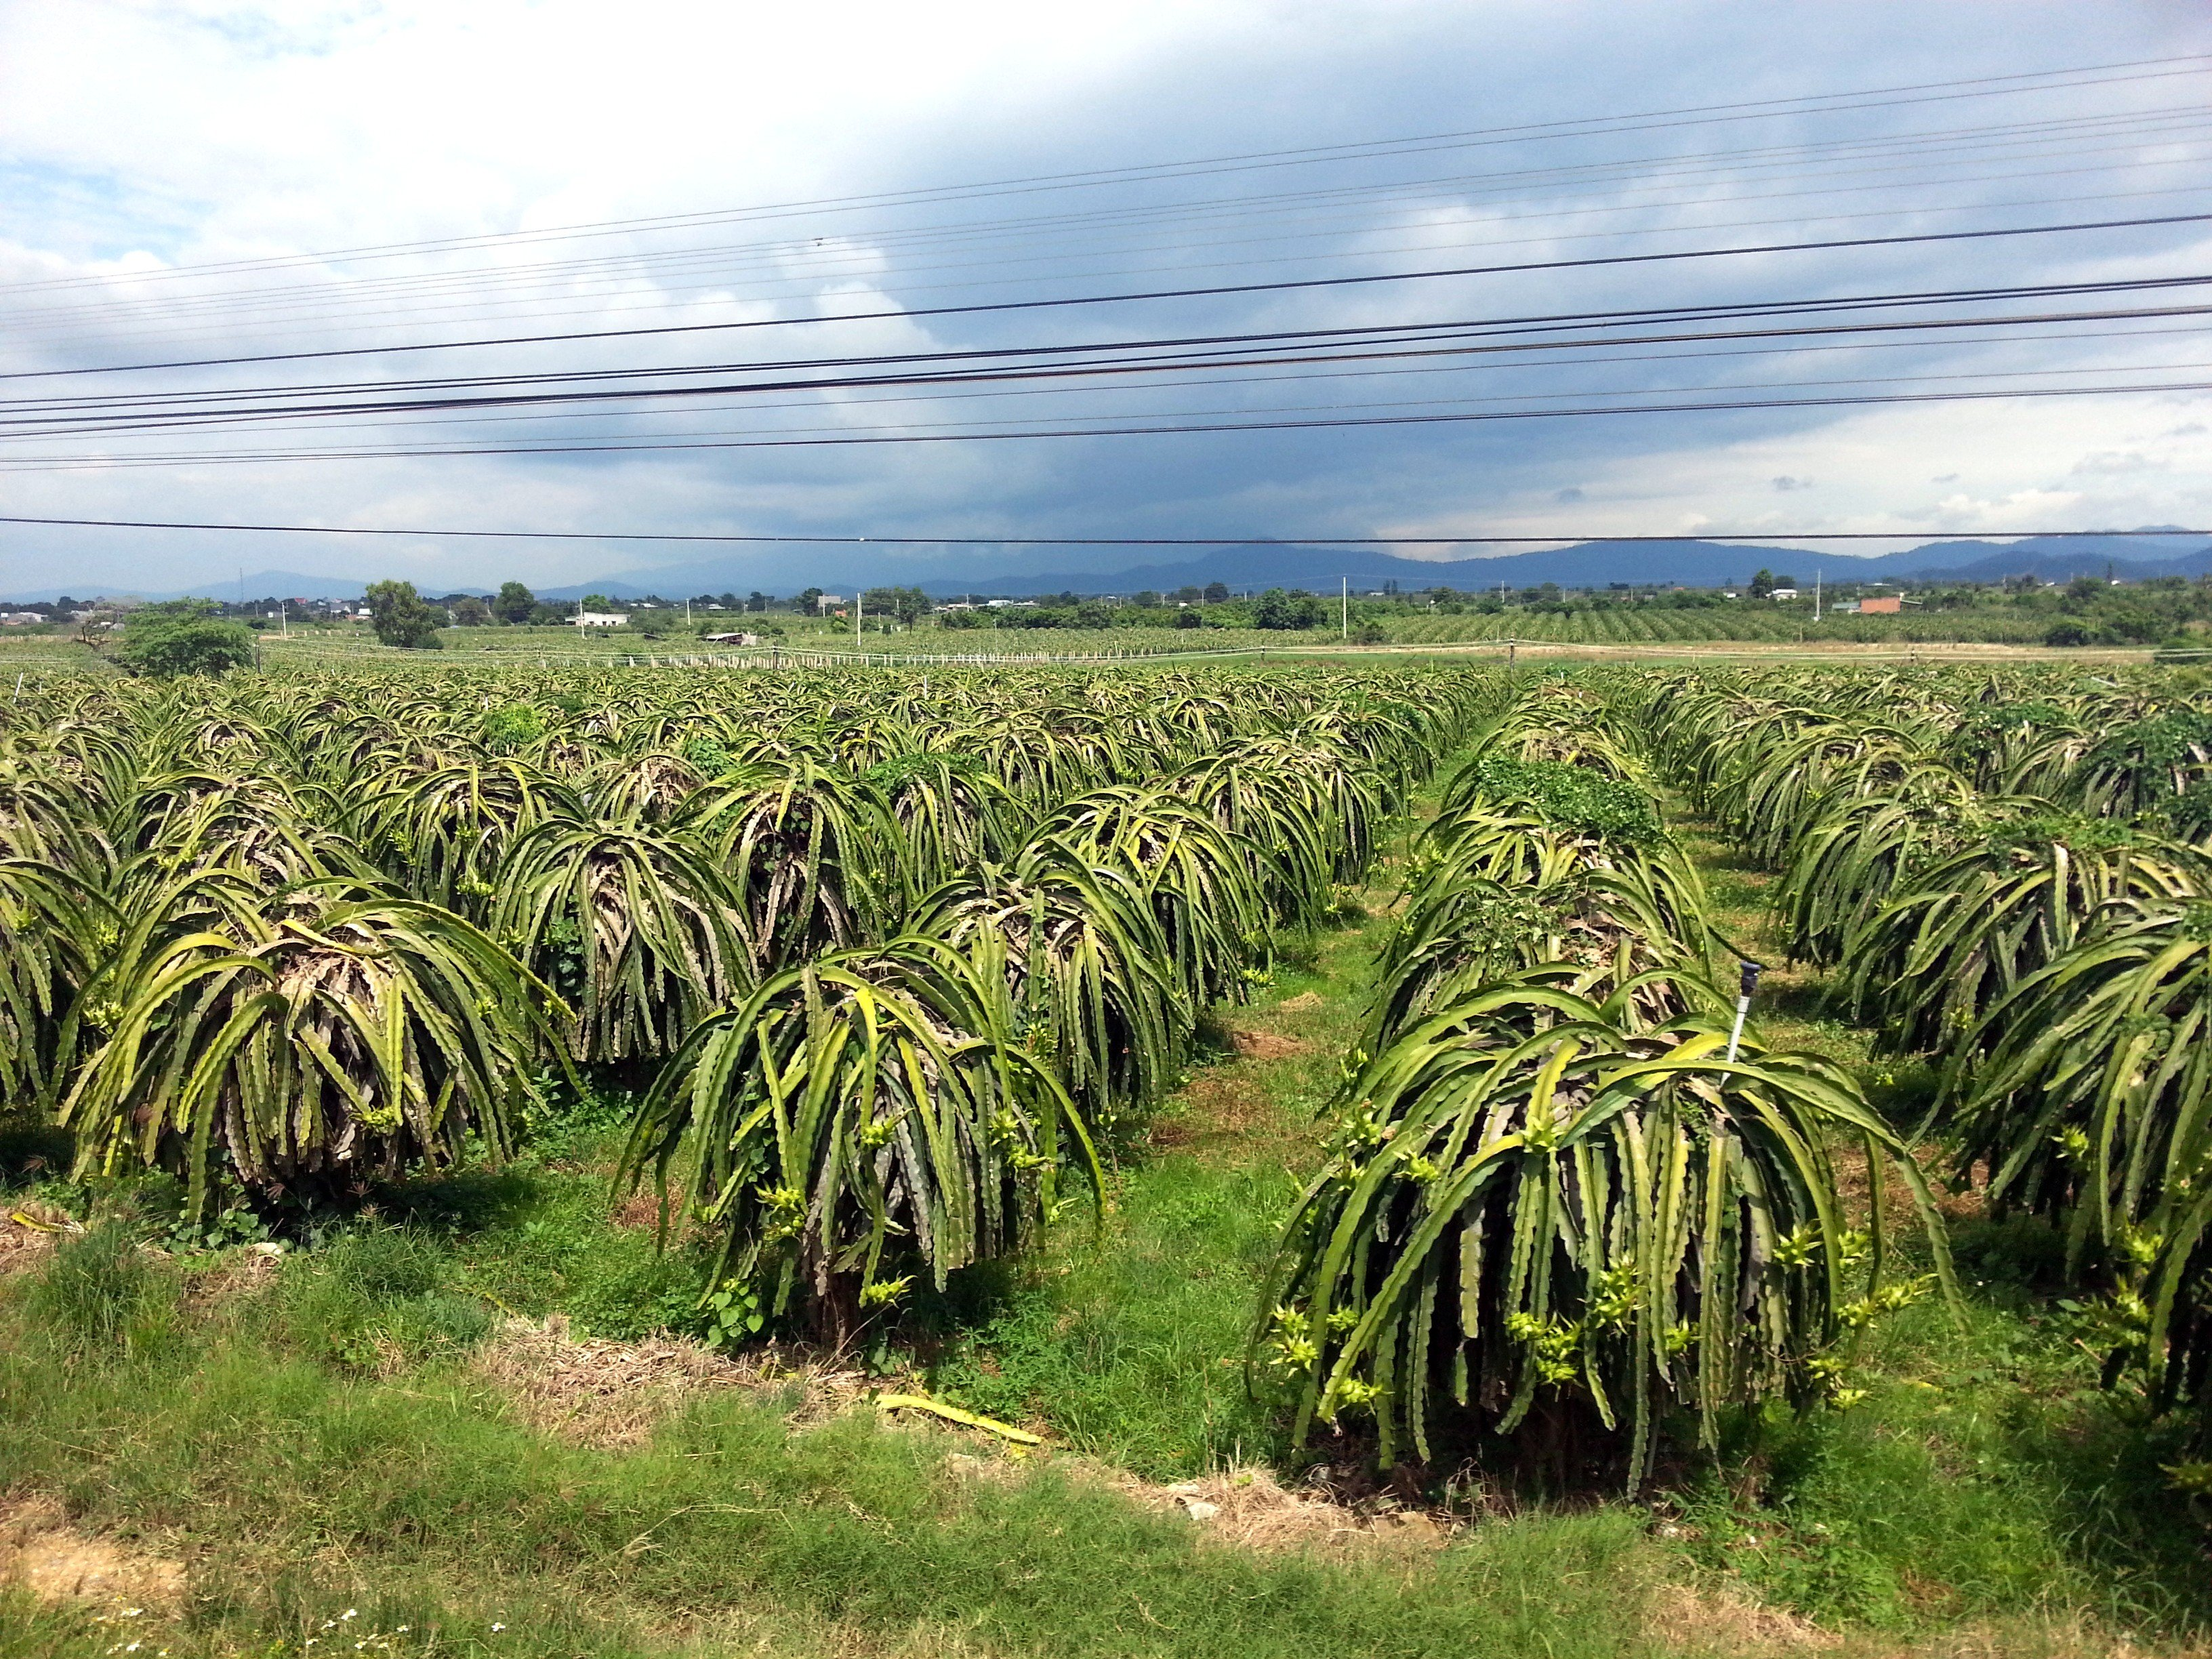 Farmland on the way to Nha Trang